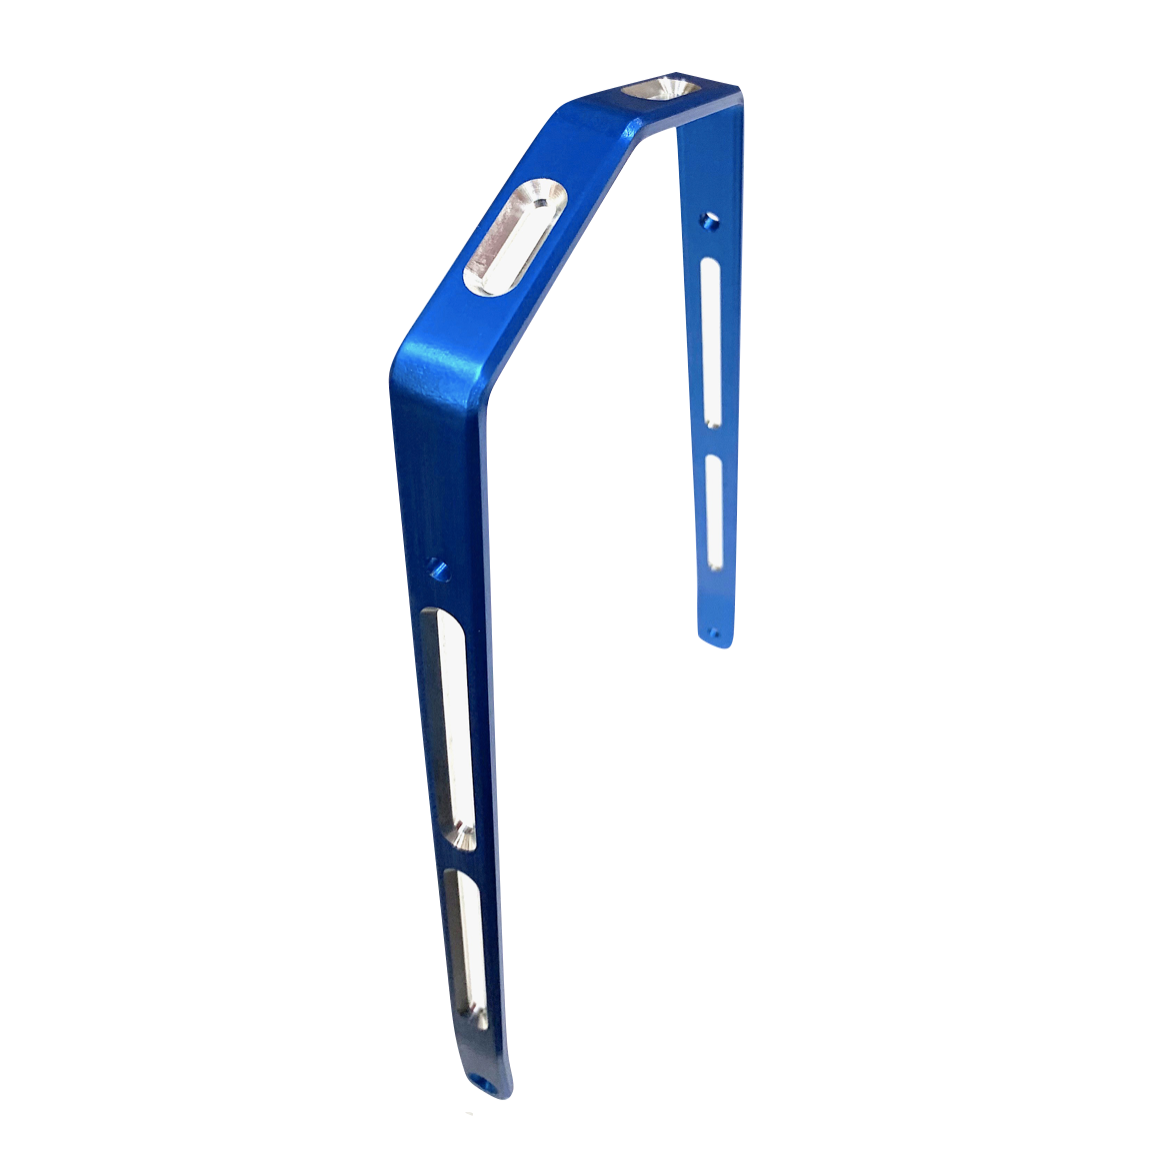 JHI PUSH BAR - BLUE